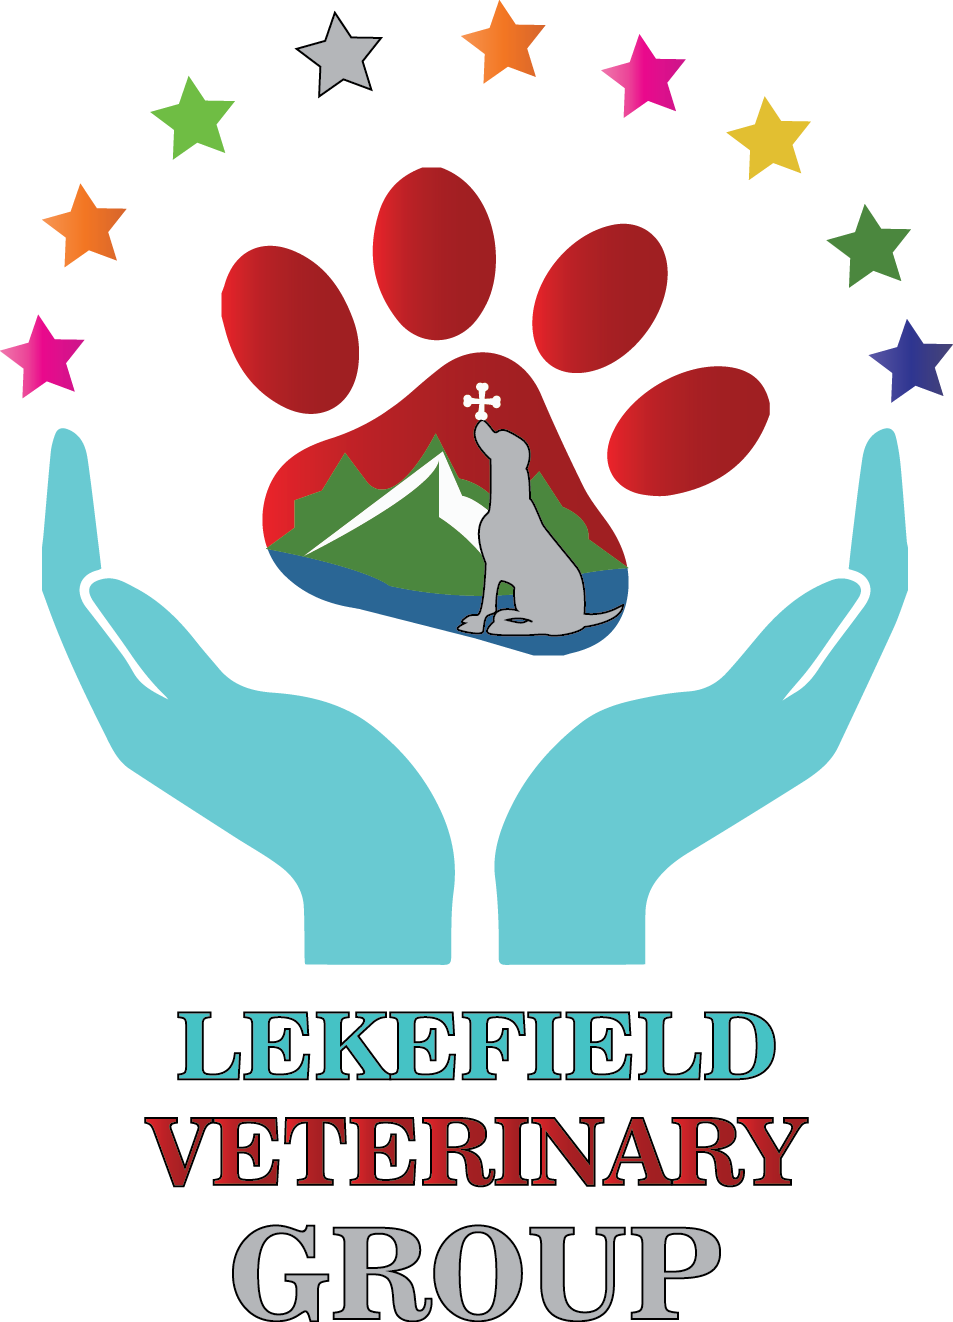 Logo Design by Umair ahmed Iqbal - Entry No. 76 in the Logo Design Contest Inspiring Logo Design for Lakefield Veterinary Group.